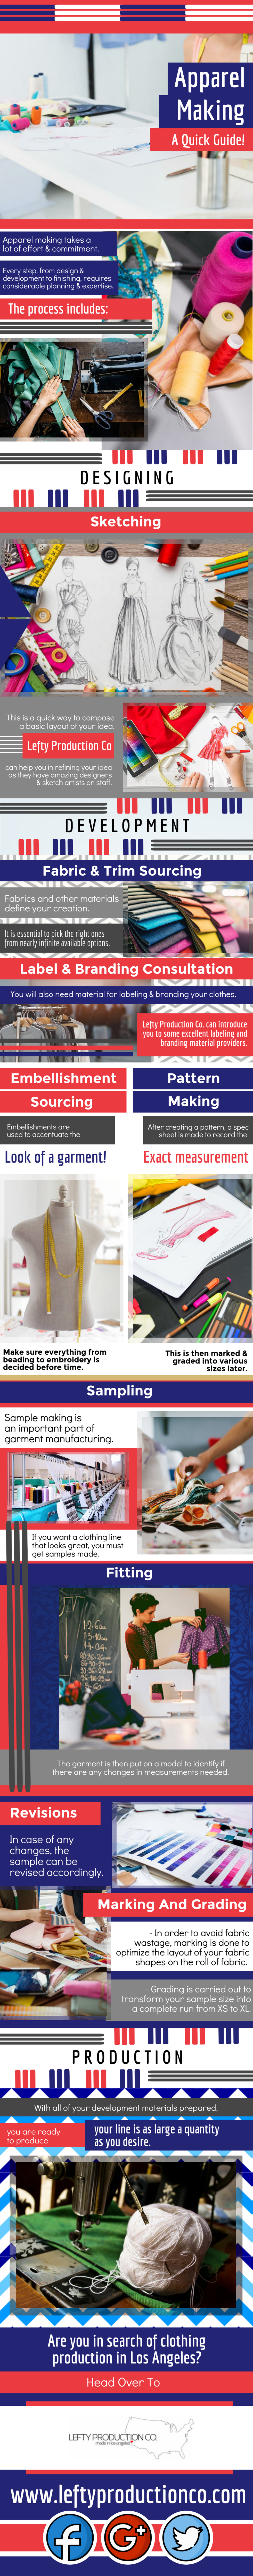 Apparel Making - A Quick Guide